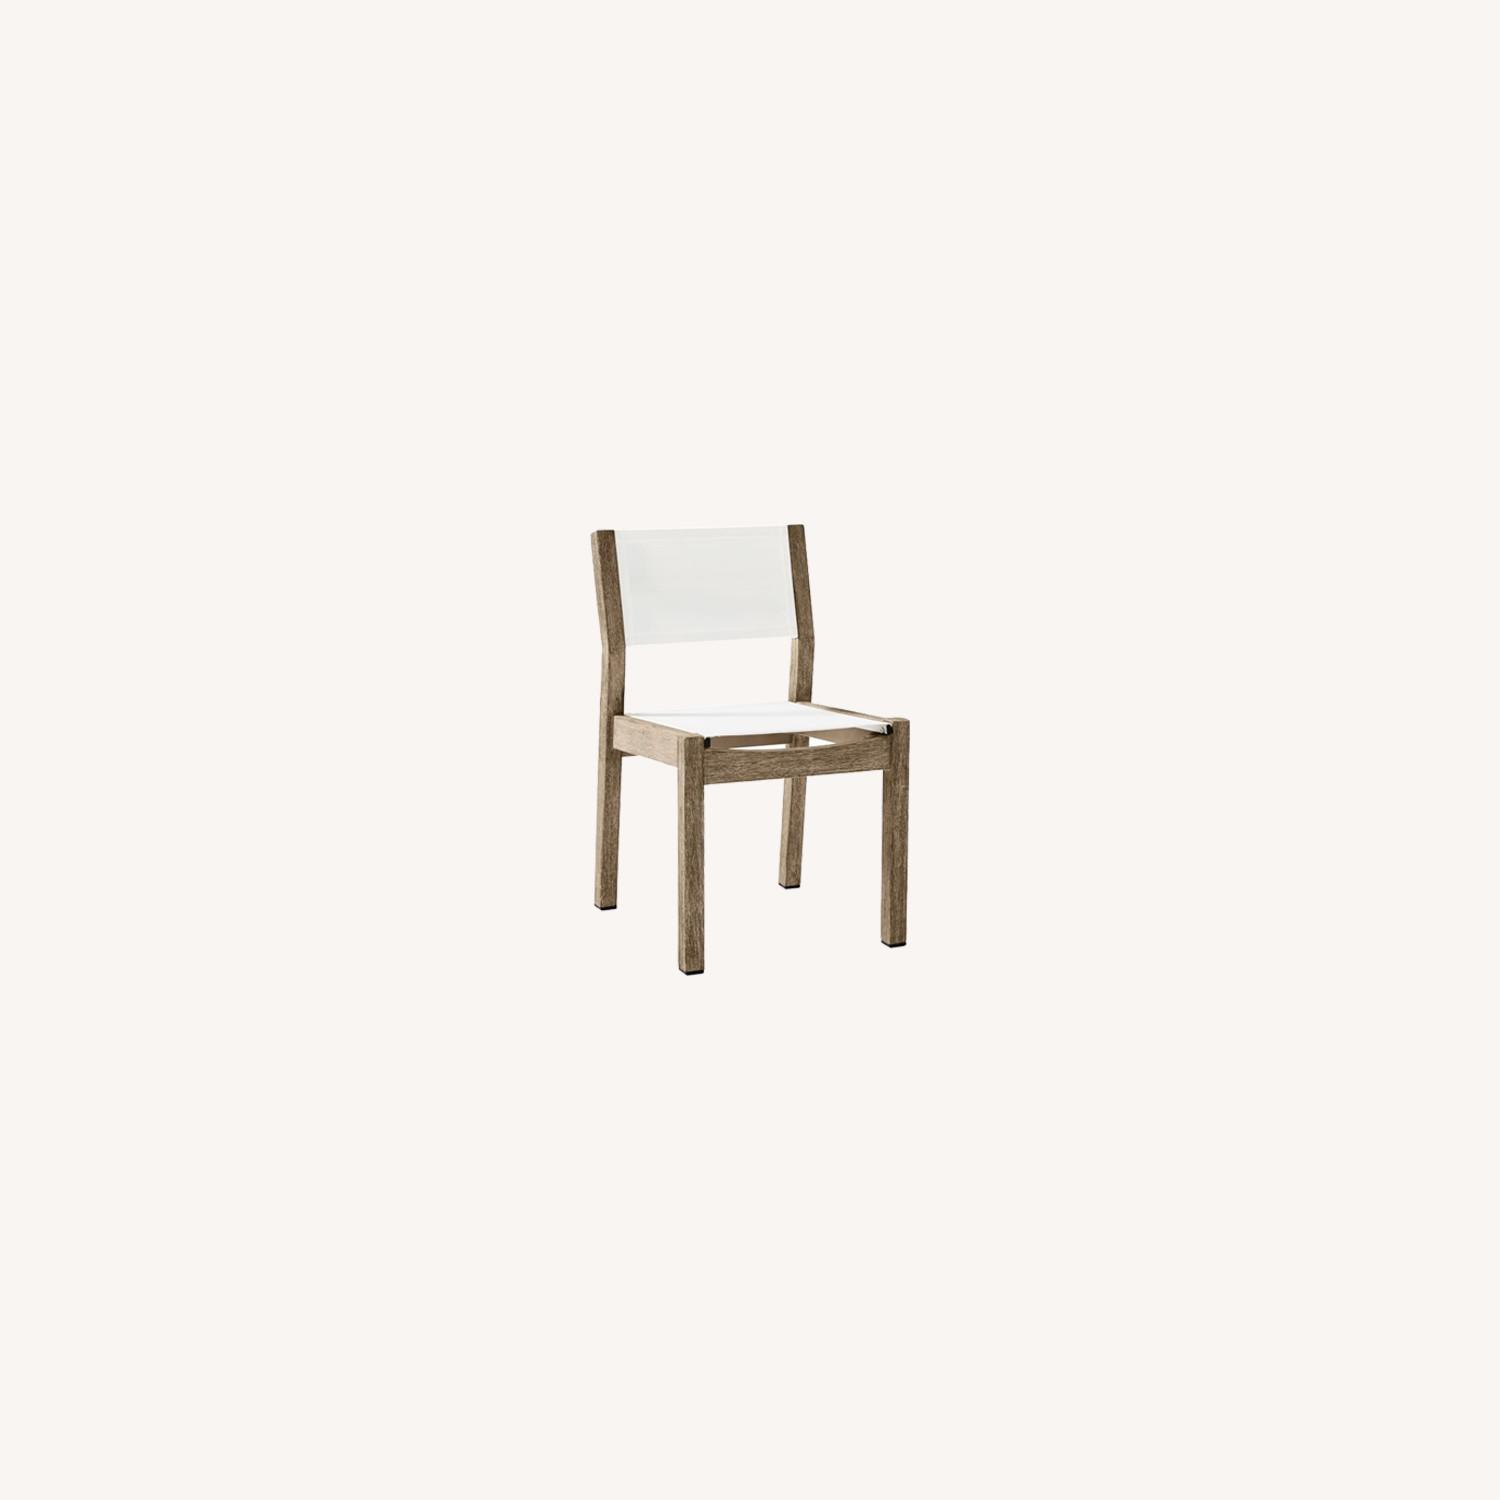 West Elm Portside Outdoor Textilene Dining Chair - image-0